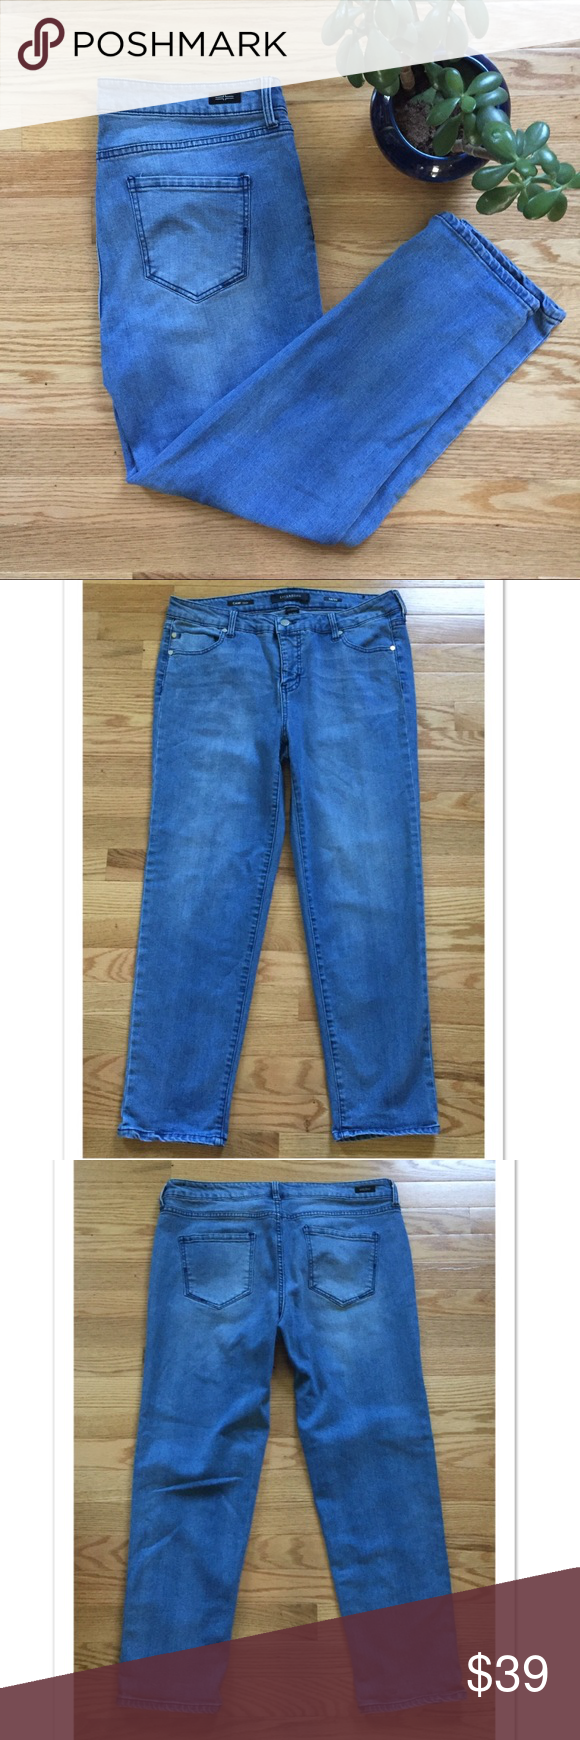 Selling this Liverpool Cami Crop Jeans Size 14 on Poshmark! My username is: davias_closet. #shopmycloset #poshmark #fashion #shopping #style #forsale #Liverpool Jeans Company #Denim